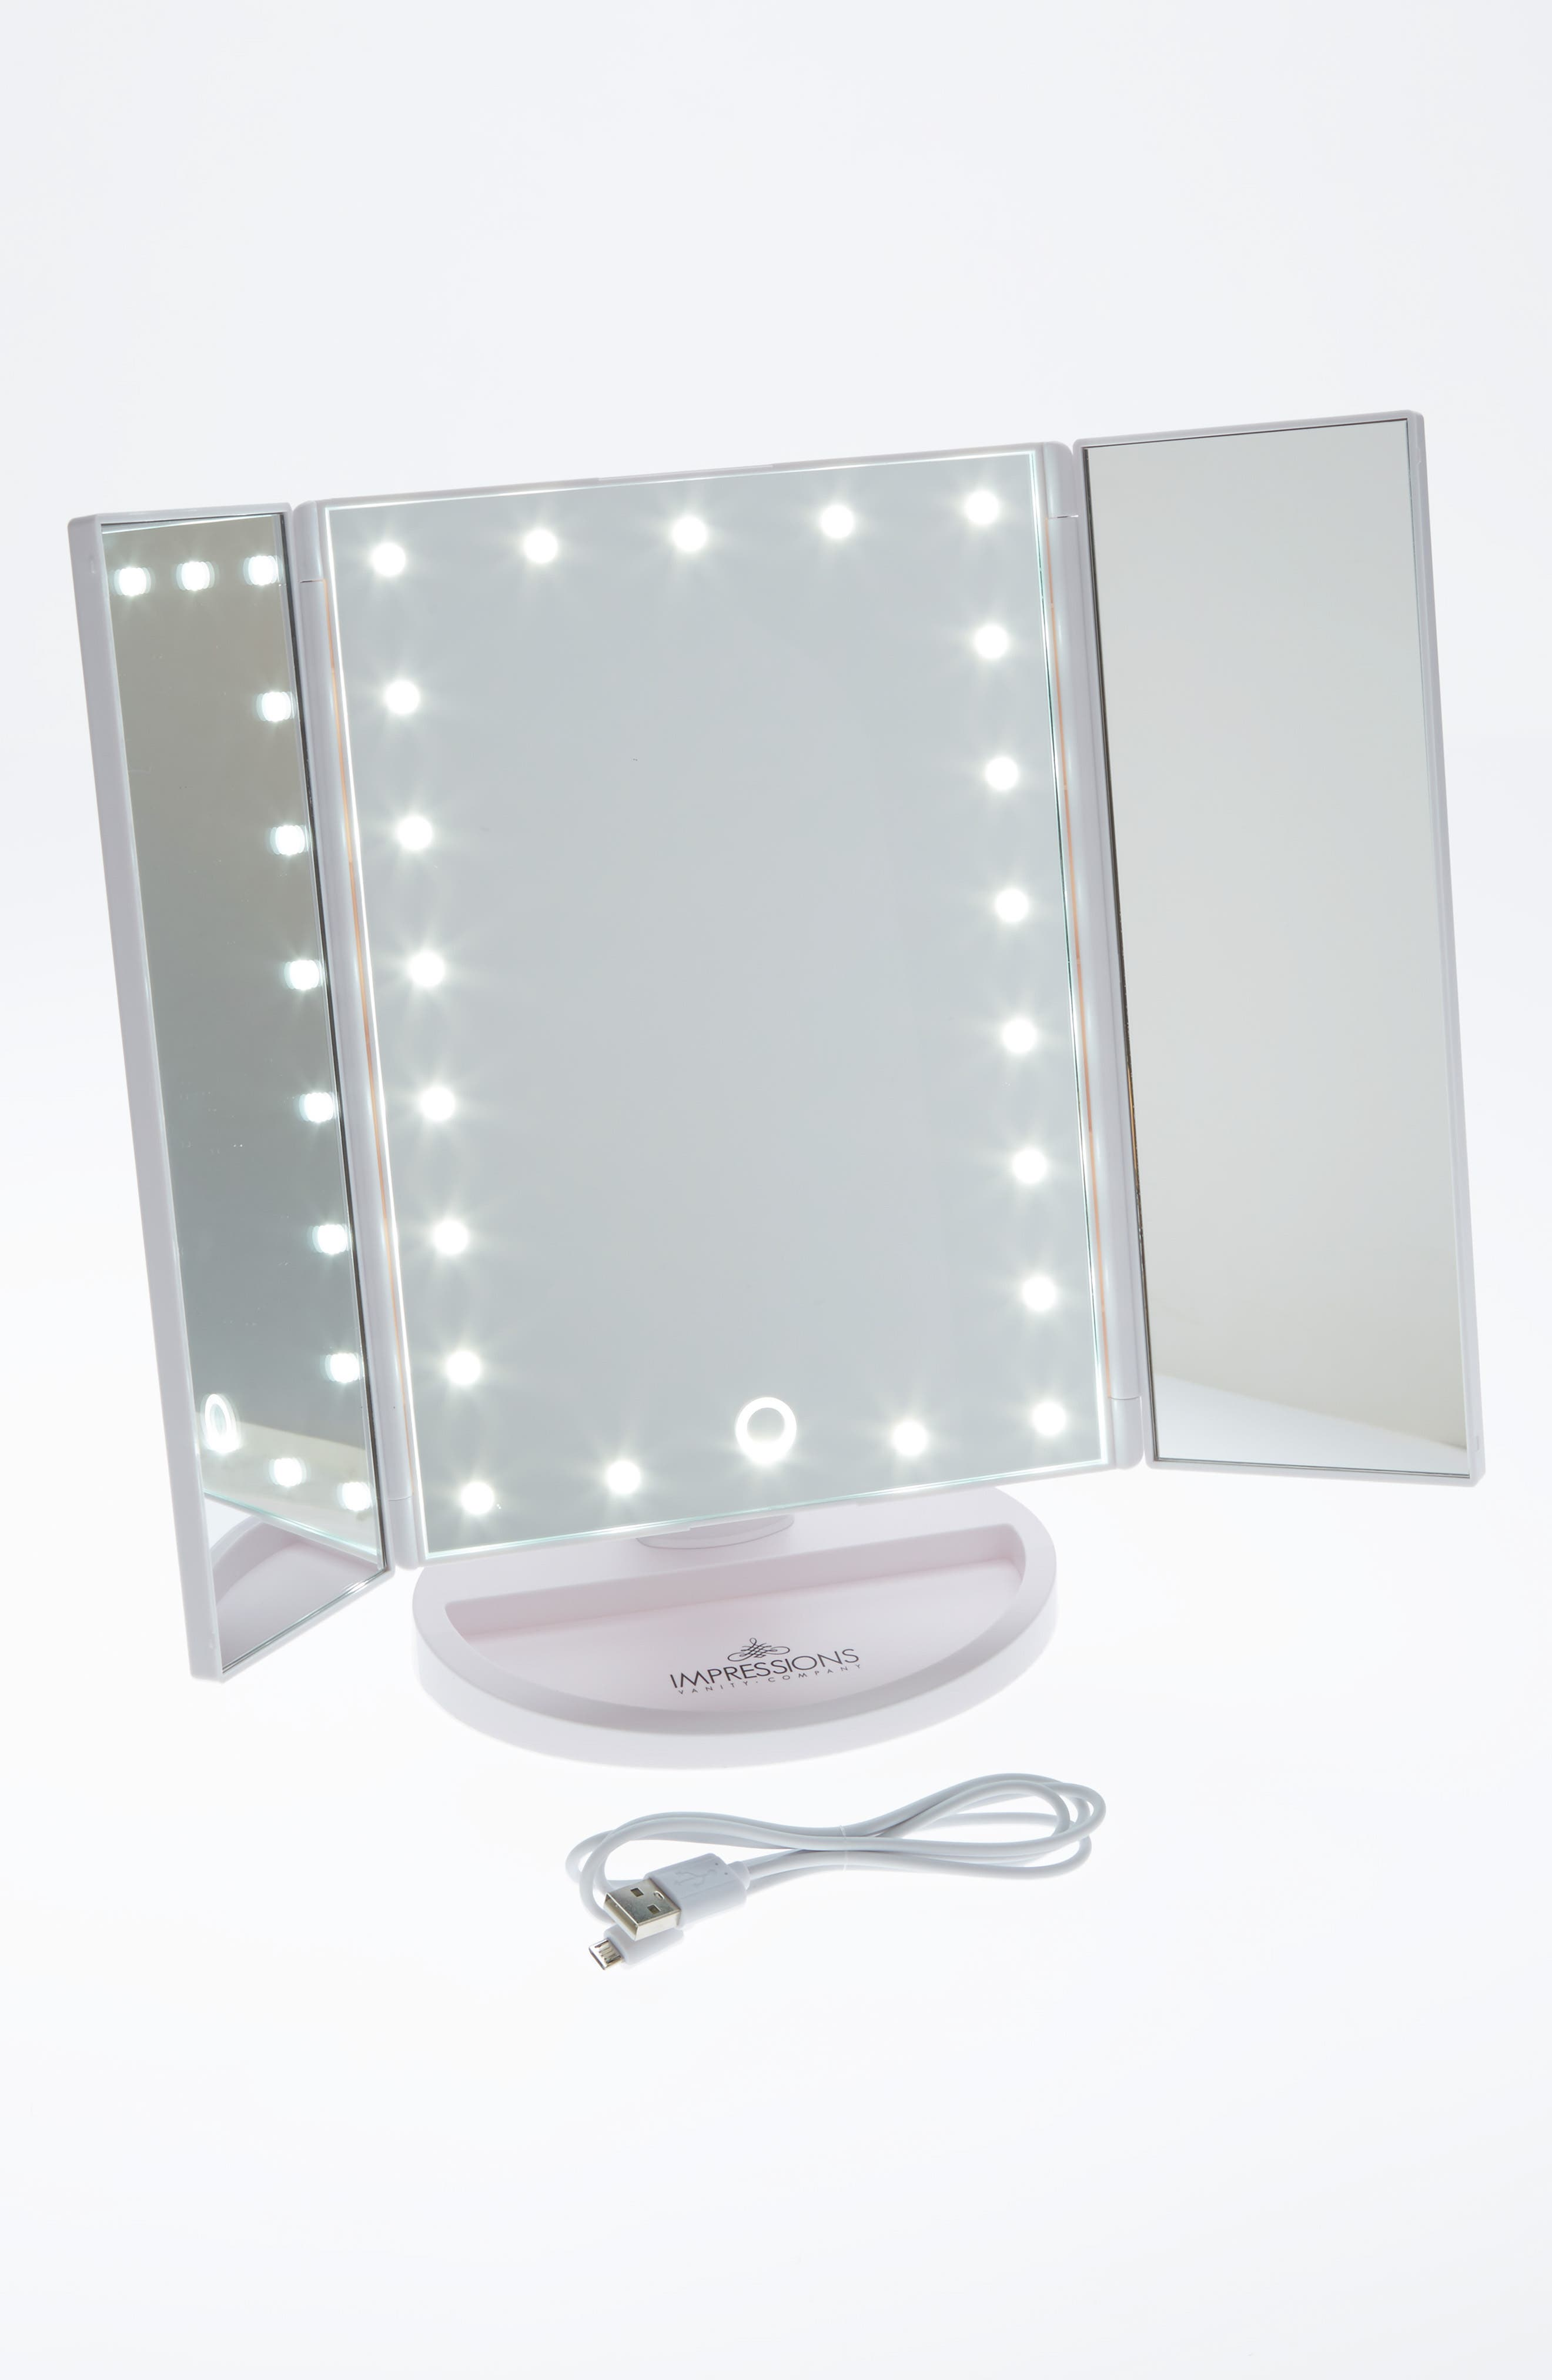 Alternate Image 1 Selected - Impressions Vanity Co. Touch 3.0 LED Trifold Makeup Mirror